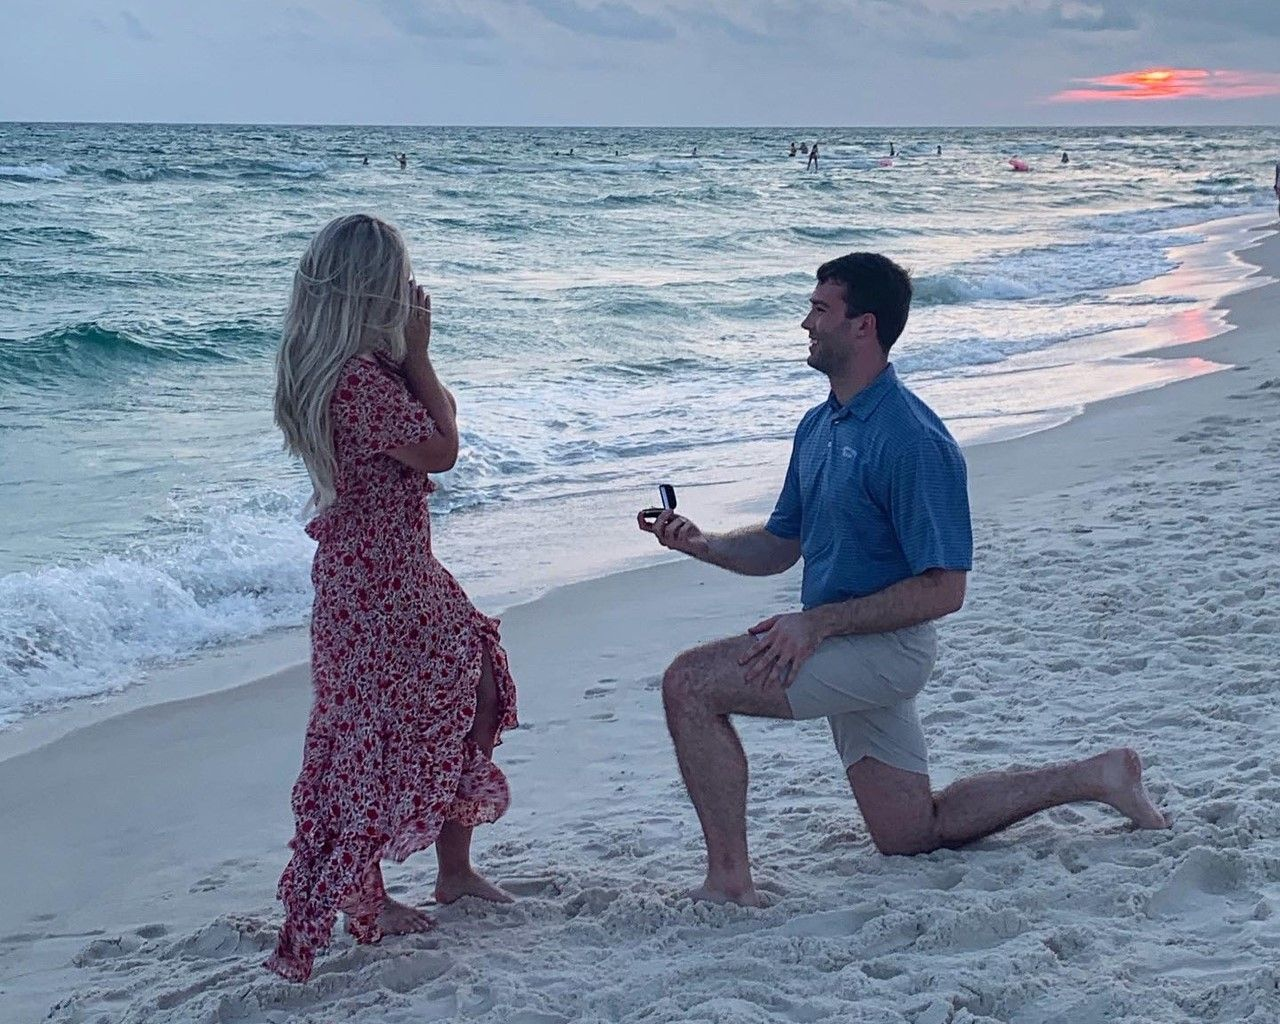 Getting engaged at the beach